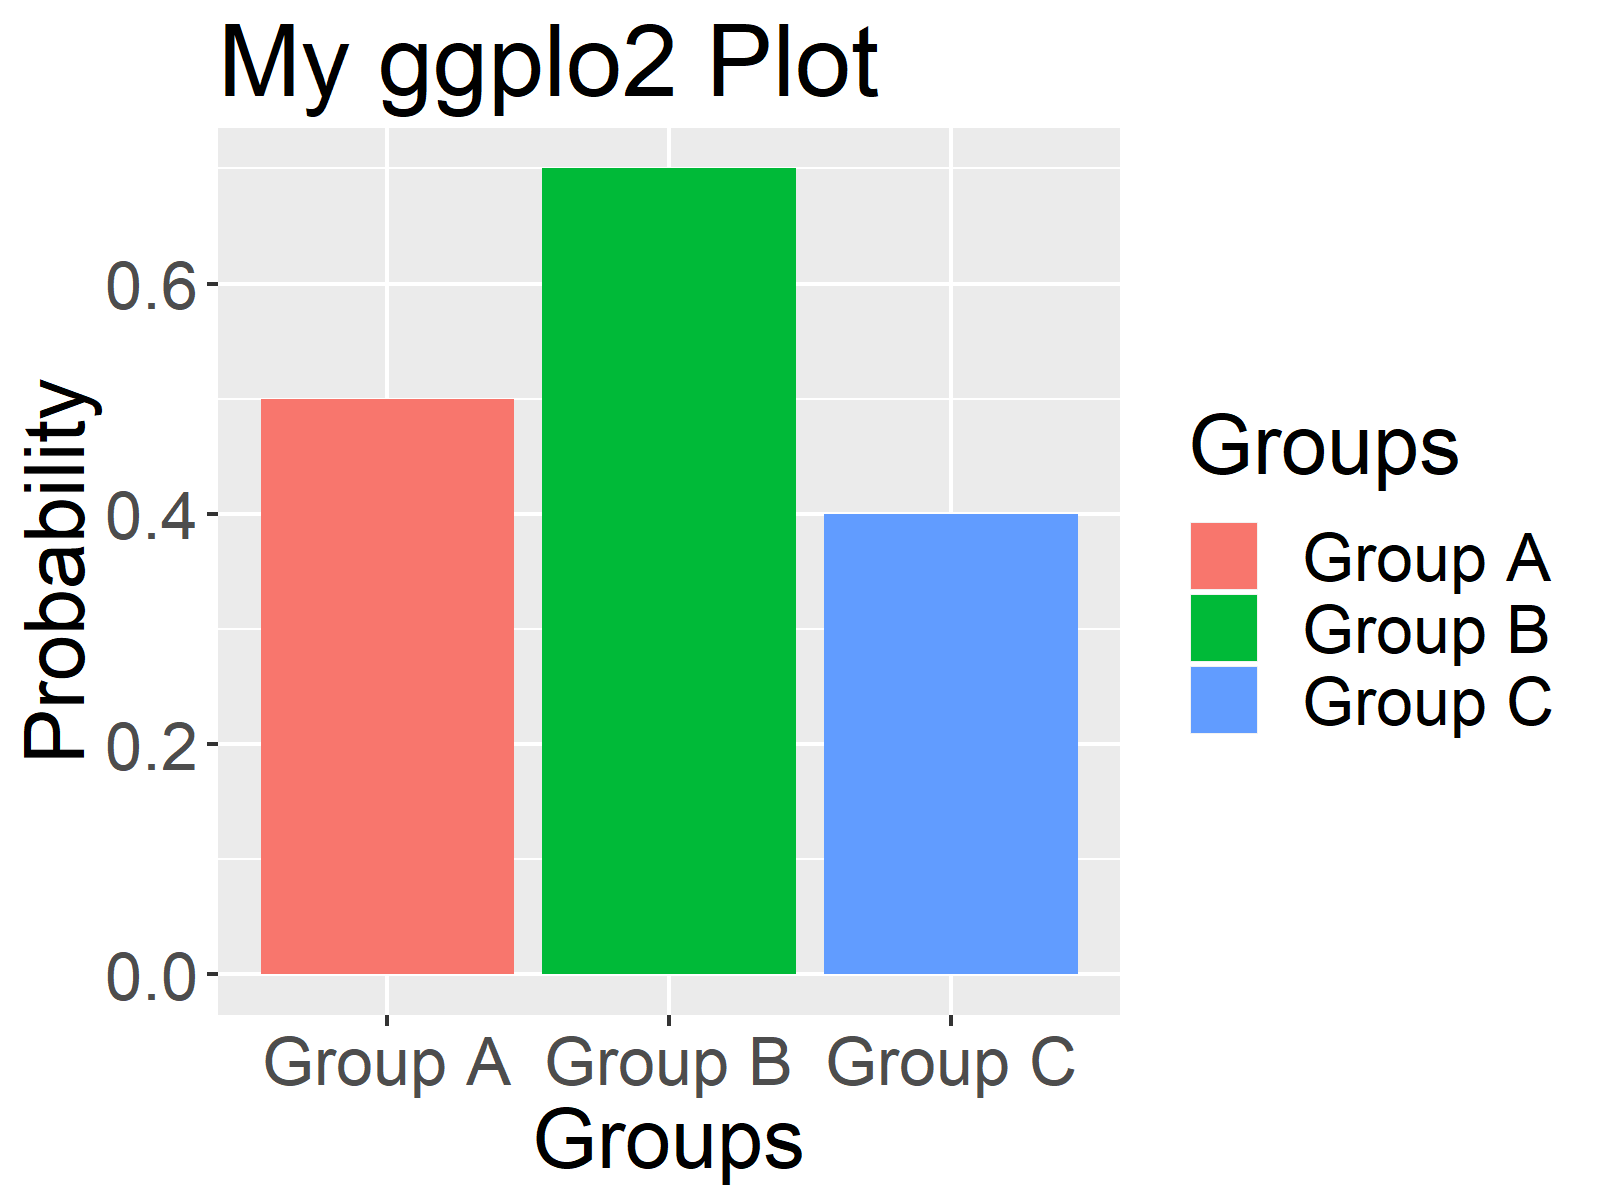 r ggplot2 plot font size of all text elements